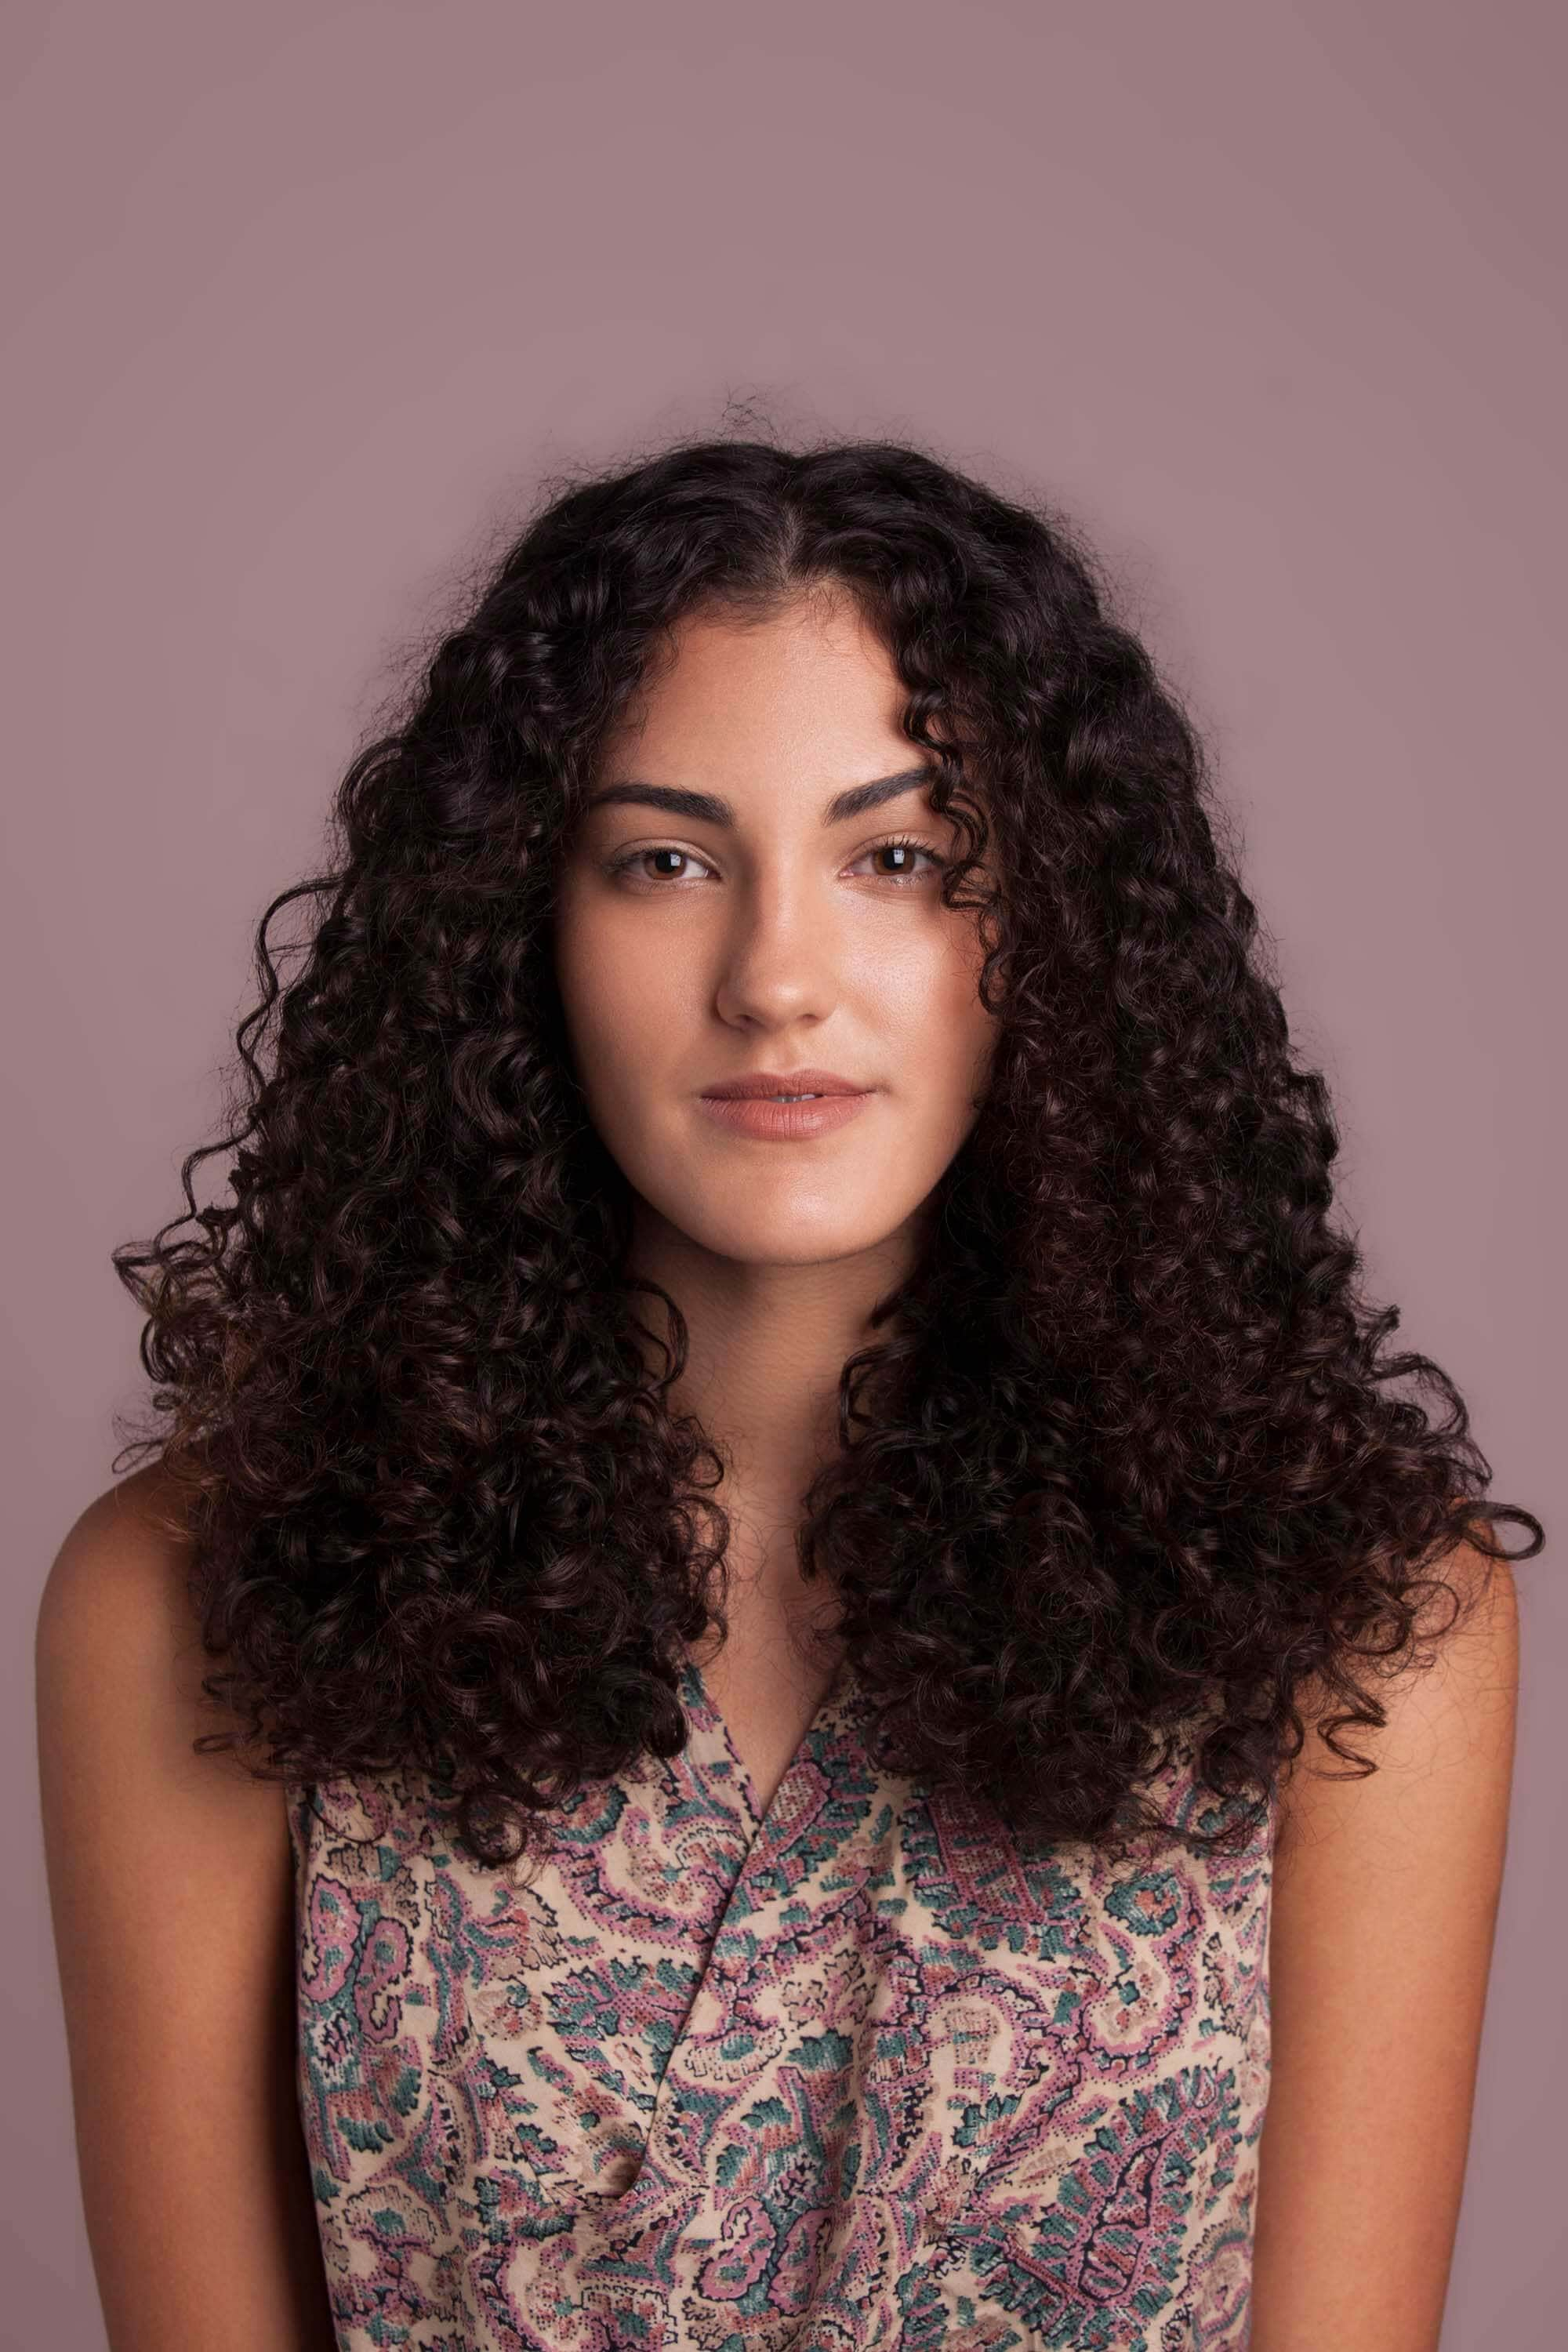 Brunette woman with blow dried curly hair